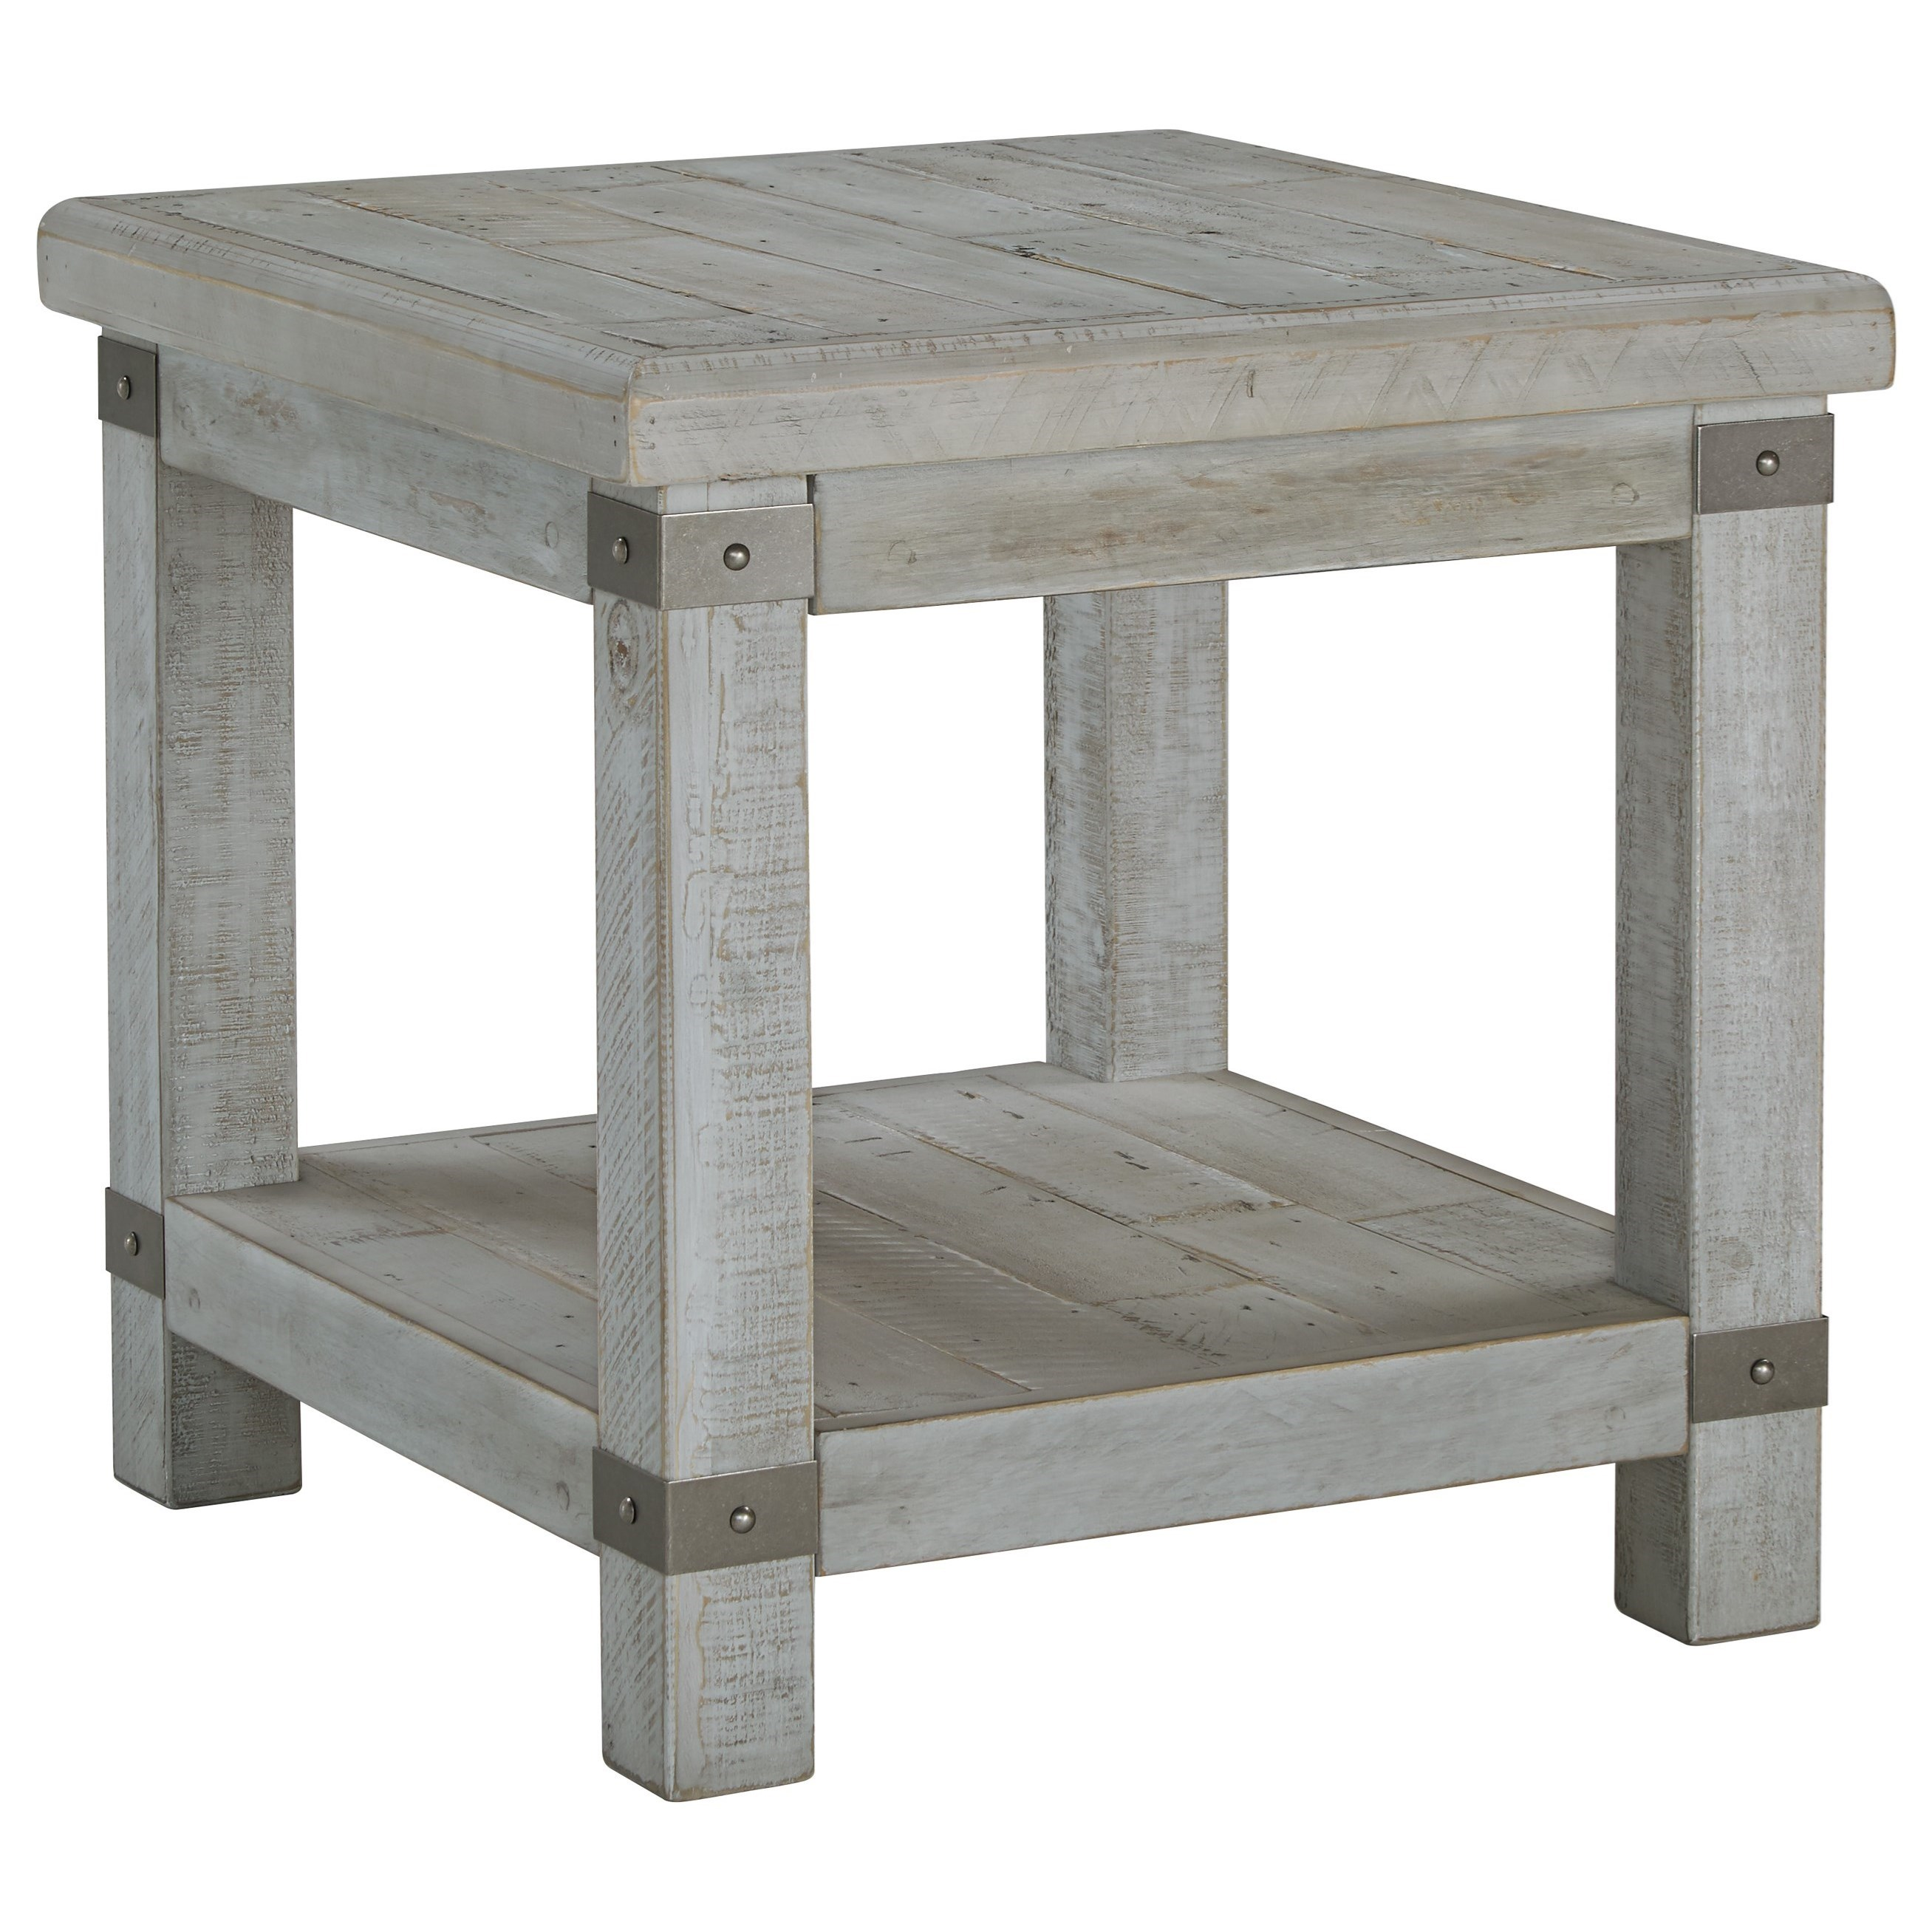 Carynhurst Rectangular End Table by Signature Design by Ashley at Northeast Factory Direct